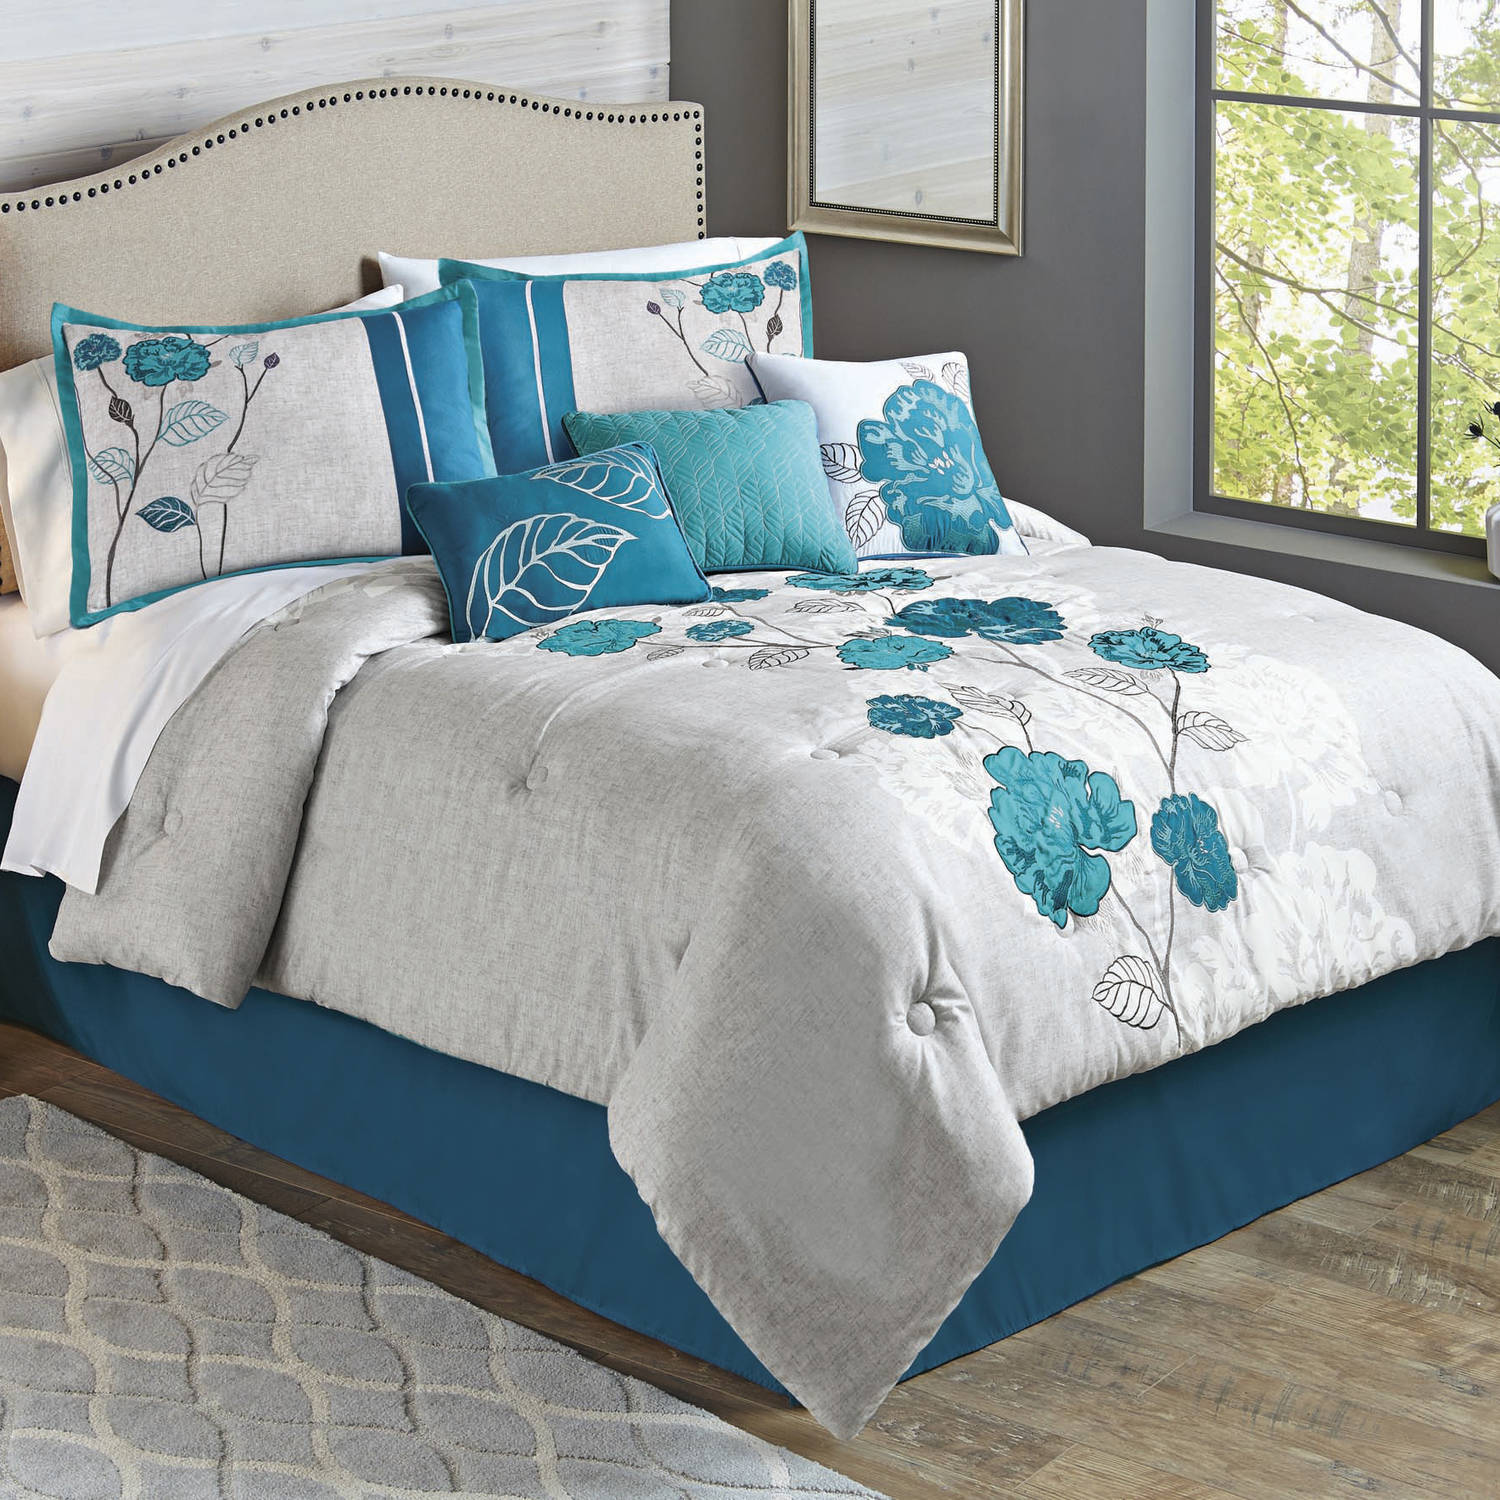 Better Homes and Gardens 7-Piece Blooming Teal Roses Comforter Set by Generic